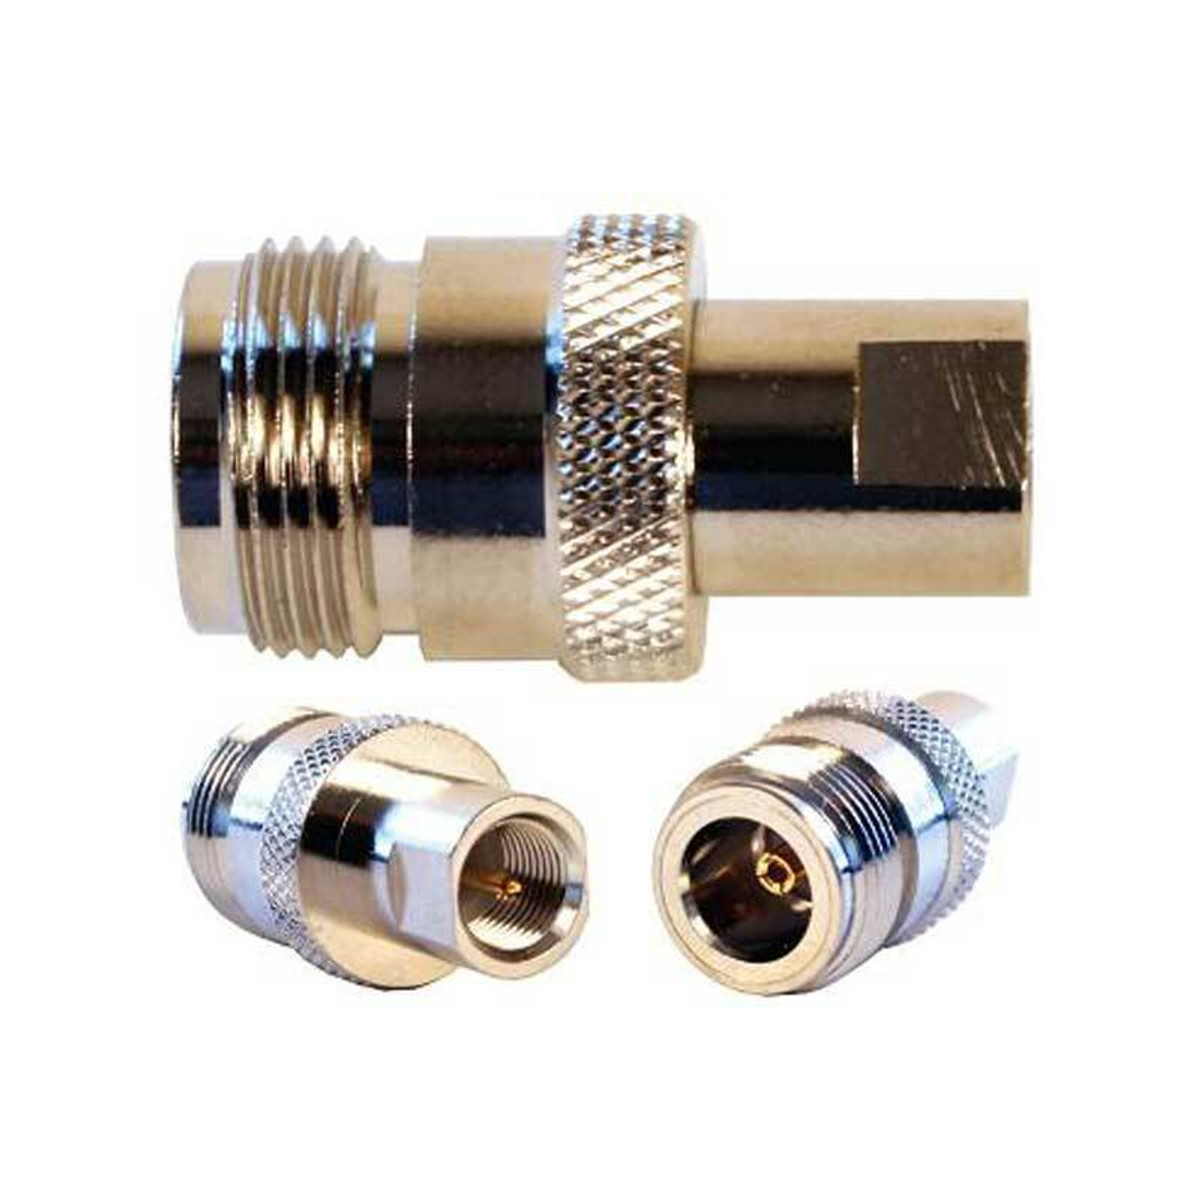 SureCall SureCall N-Female to FME-Male Connector or SC-CN-11